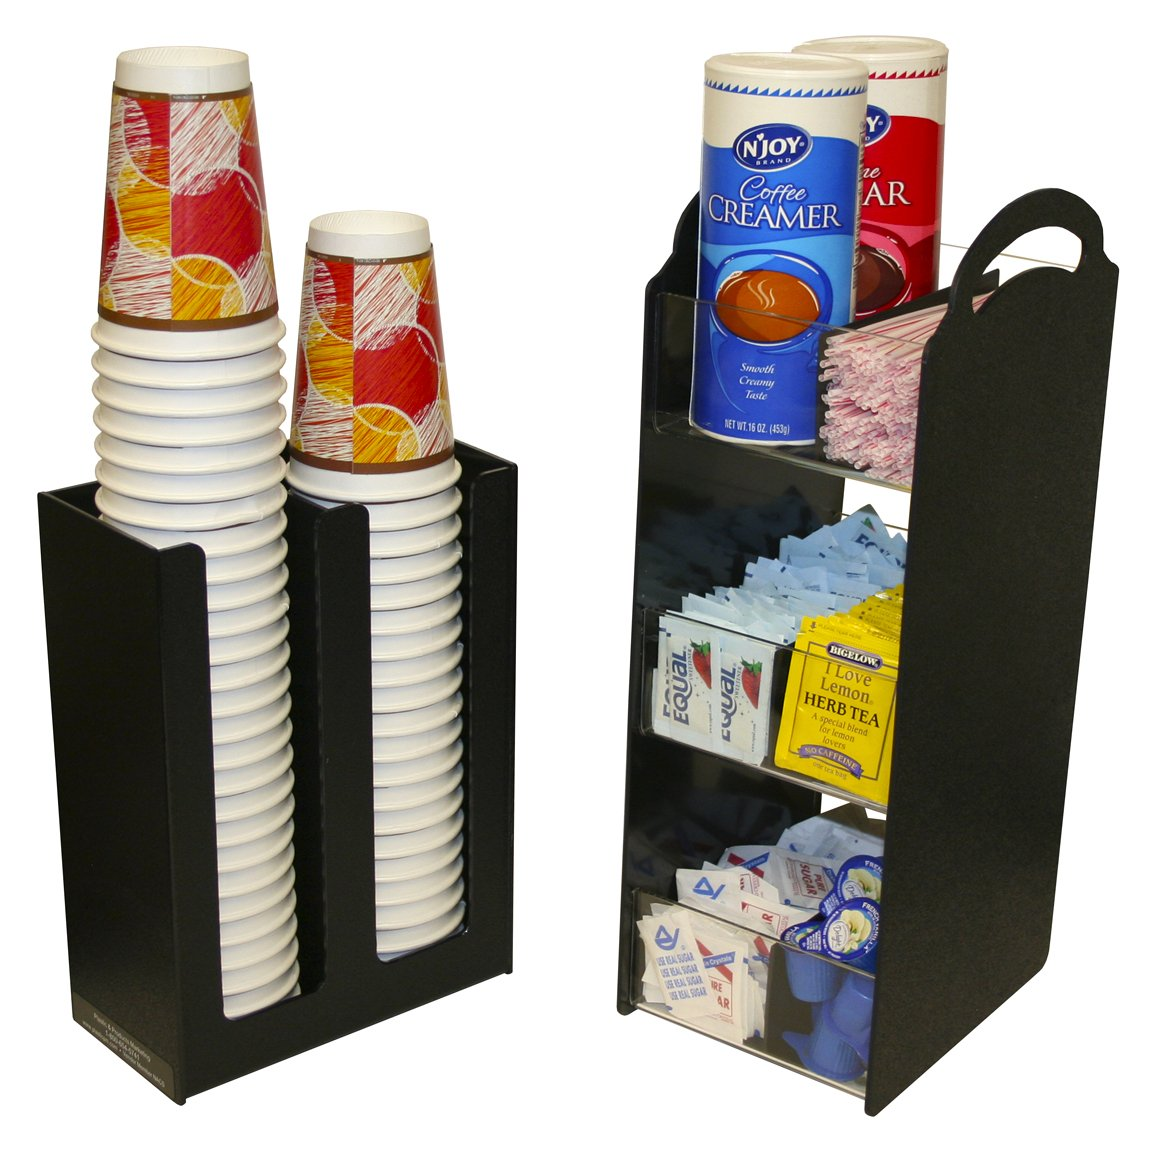 Coffee Condiment Organizer Combo with cup and/or Lid Holder. 2 Piece combo - One Great Price! Great for Small Offices, Waiting rooms or Coffee Service Areas. Each shelf has a Movable Divider. Use Together or Separately. Proudly Made in the USA ! by PPM.